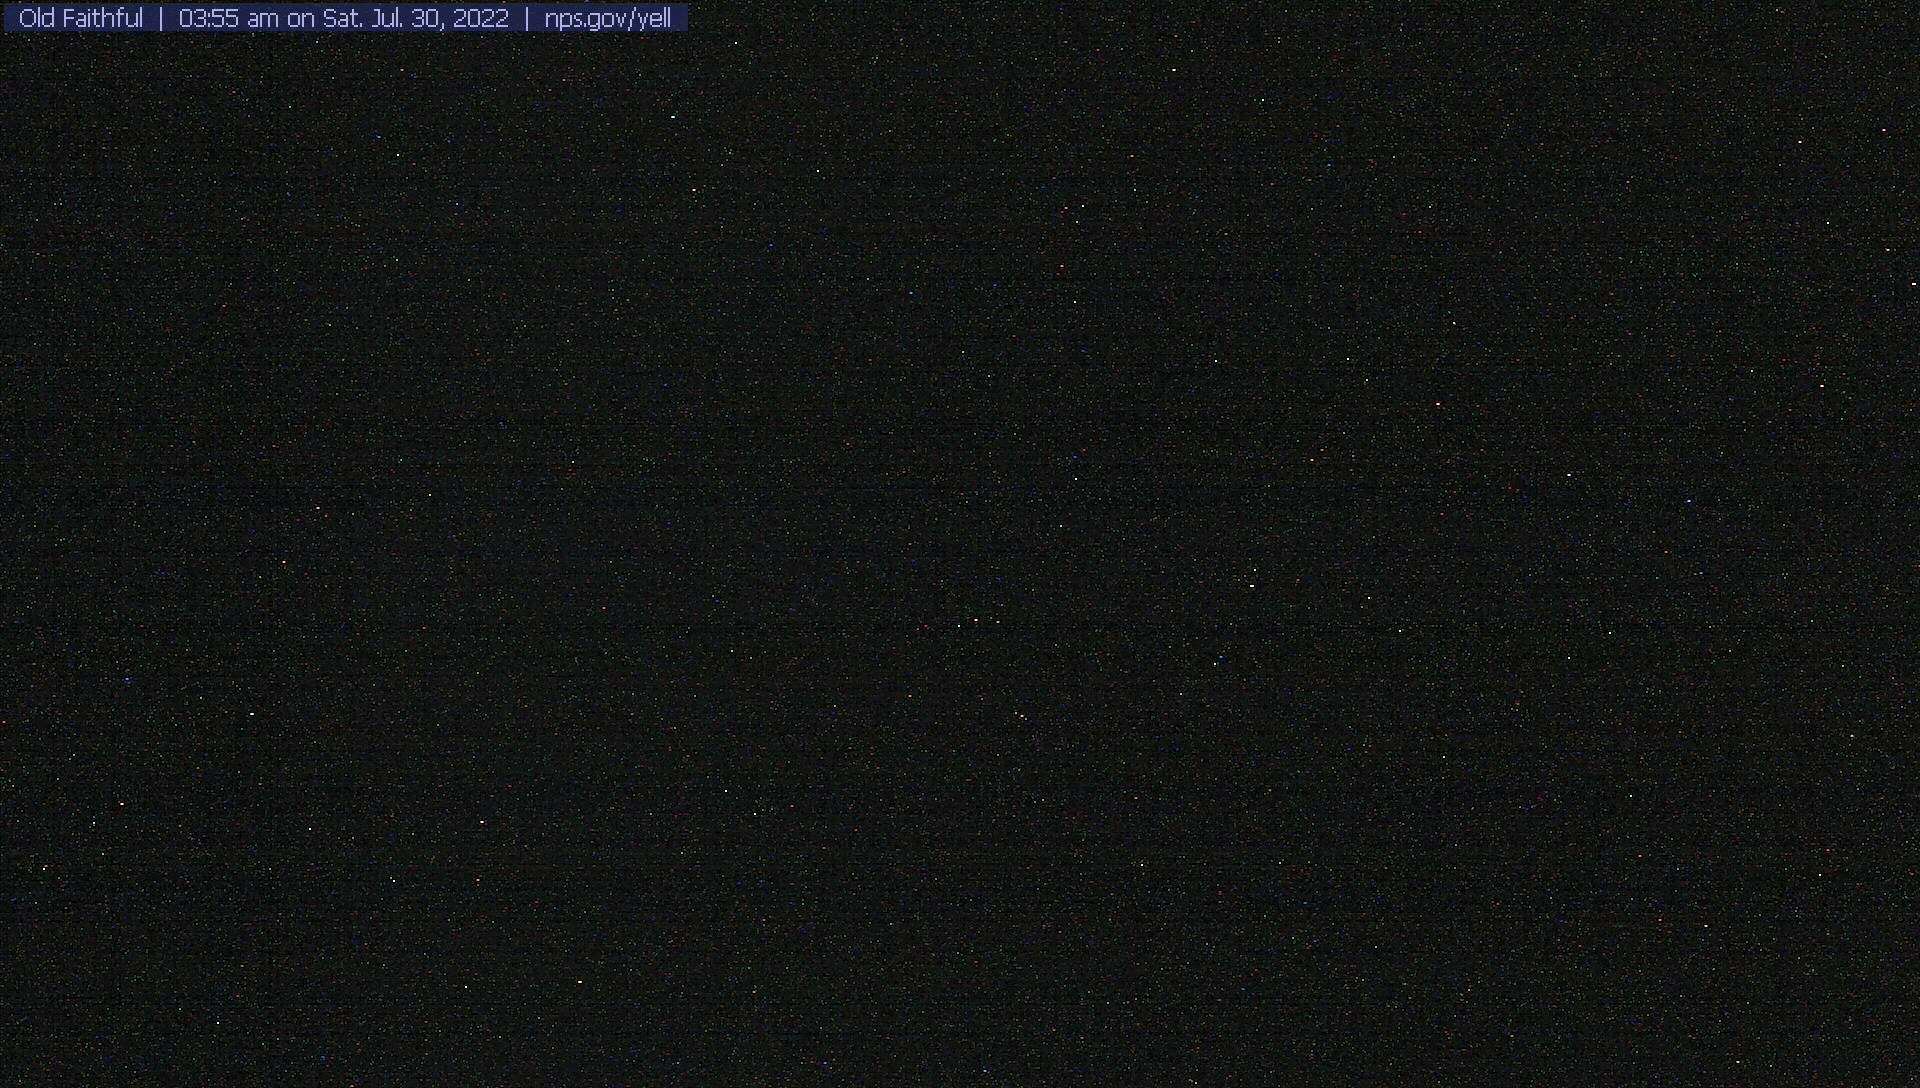 View of Old Faithful Geyser as seen through the front of the visitor education center.